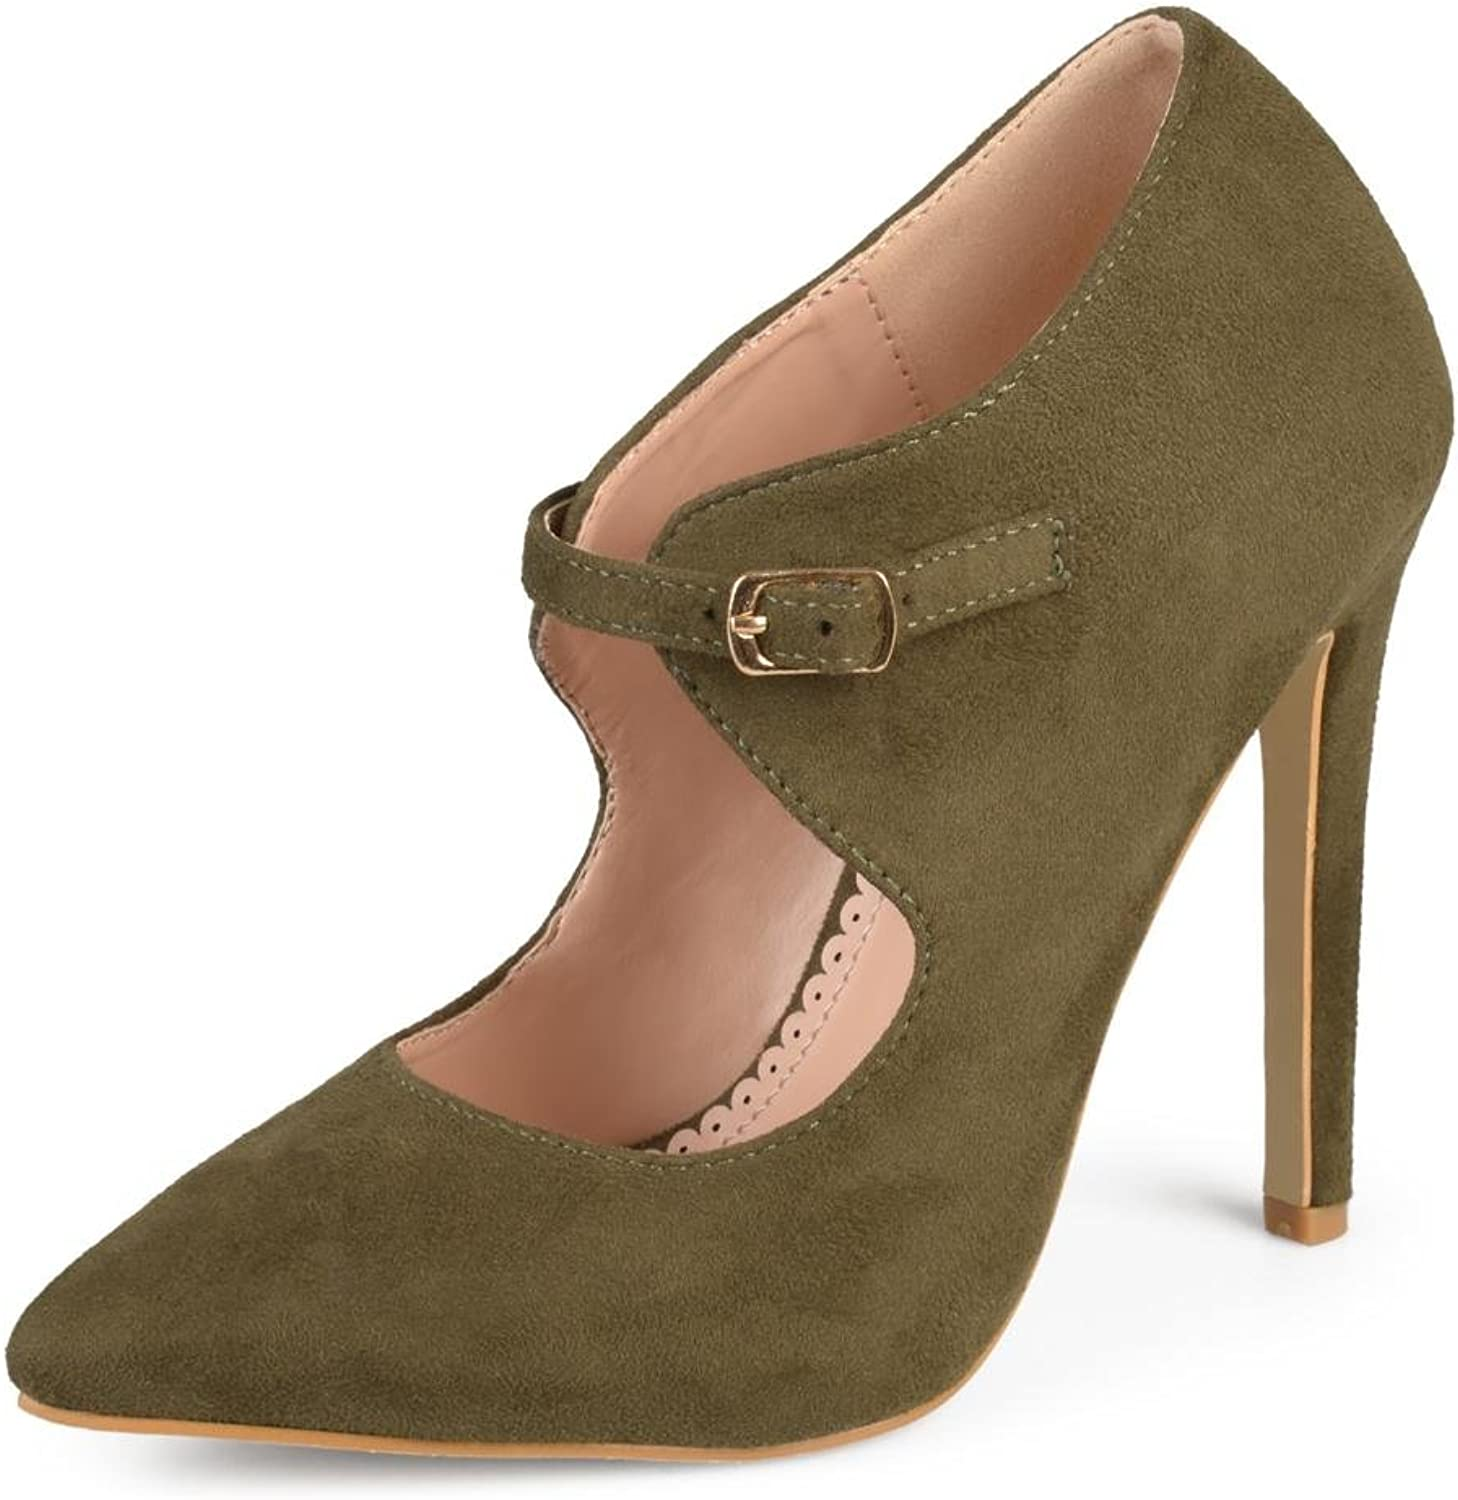 Brinley Co Womens Faux Suede Pointed Toe Cut-Out Heels